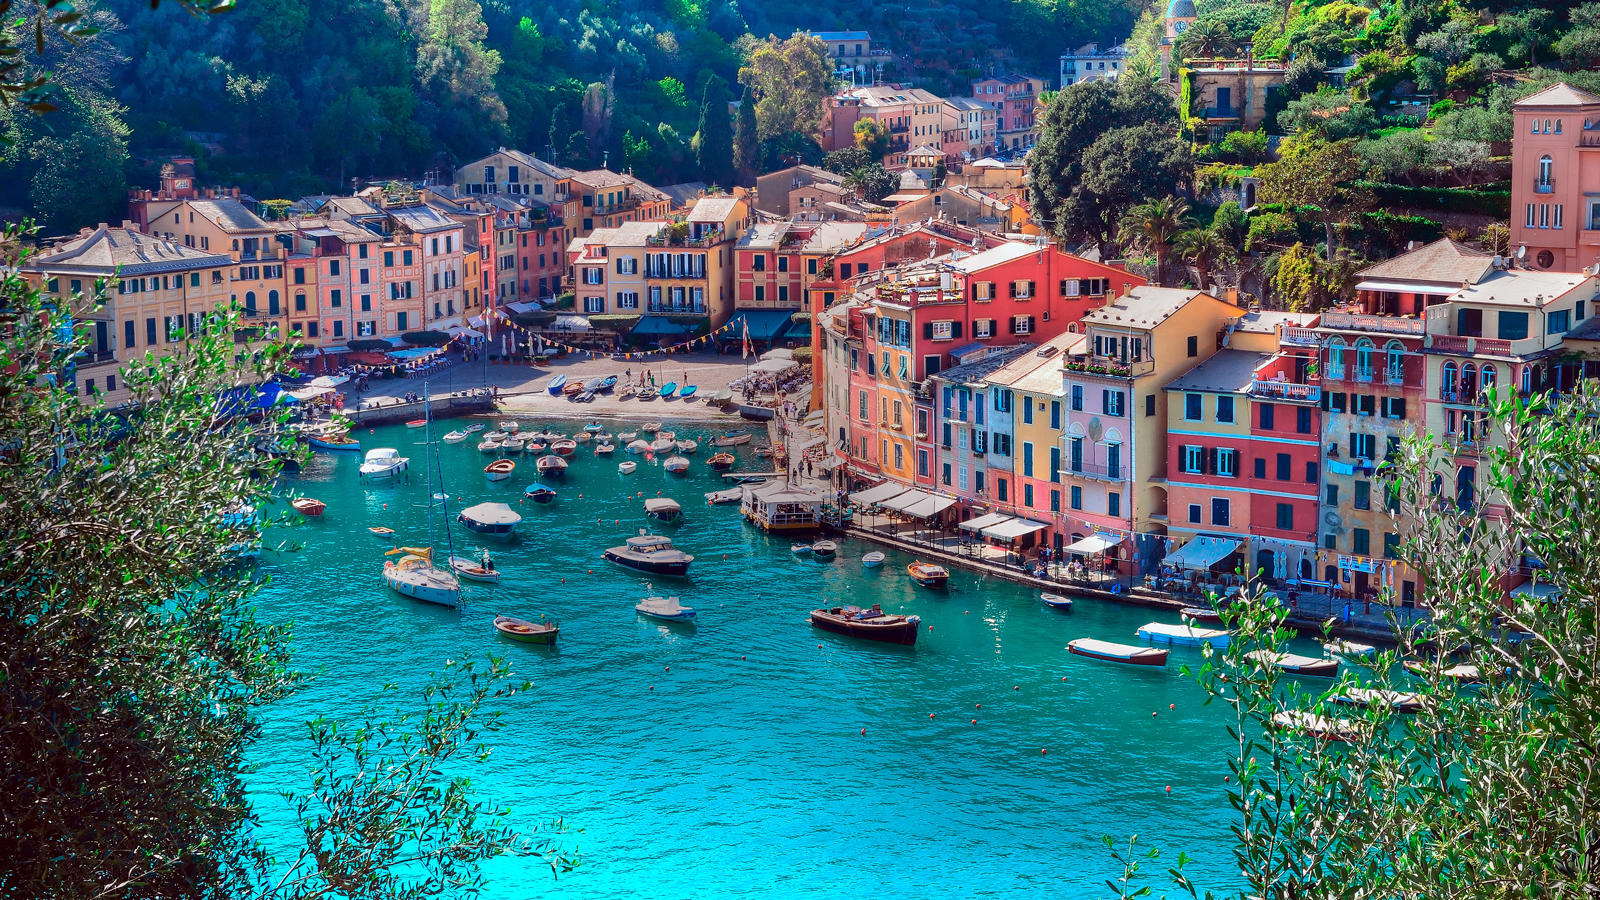 http://weboatlovers.wehomeowners.com/wp-content/uploads/2016/07/Portofino-SS-1920x1080.jpg